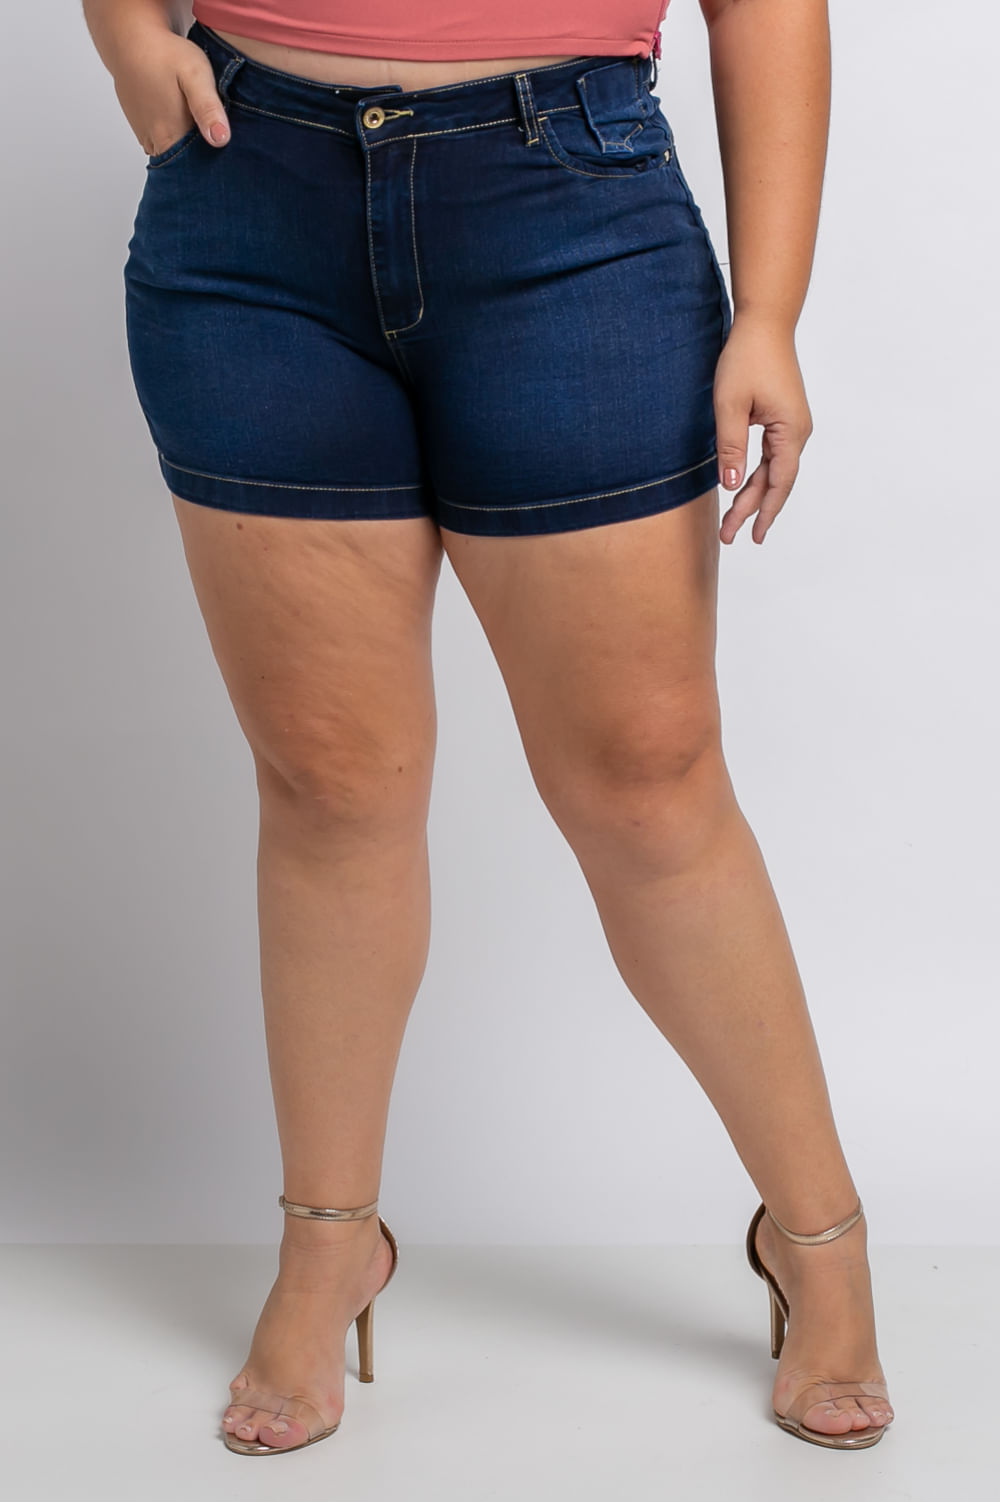 SHY35593_Shorts_Liso_Plus_Size_Jeans_AZUL_3